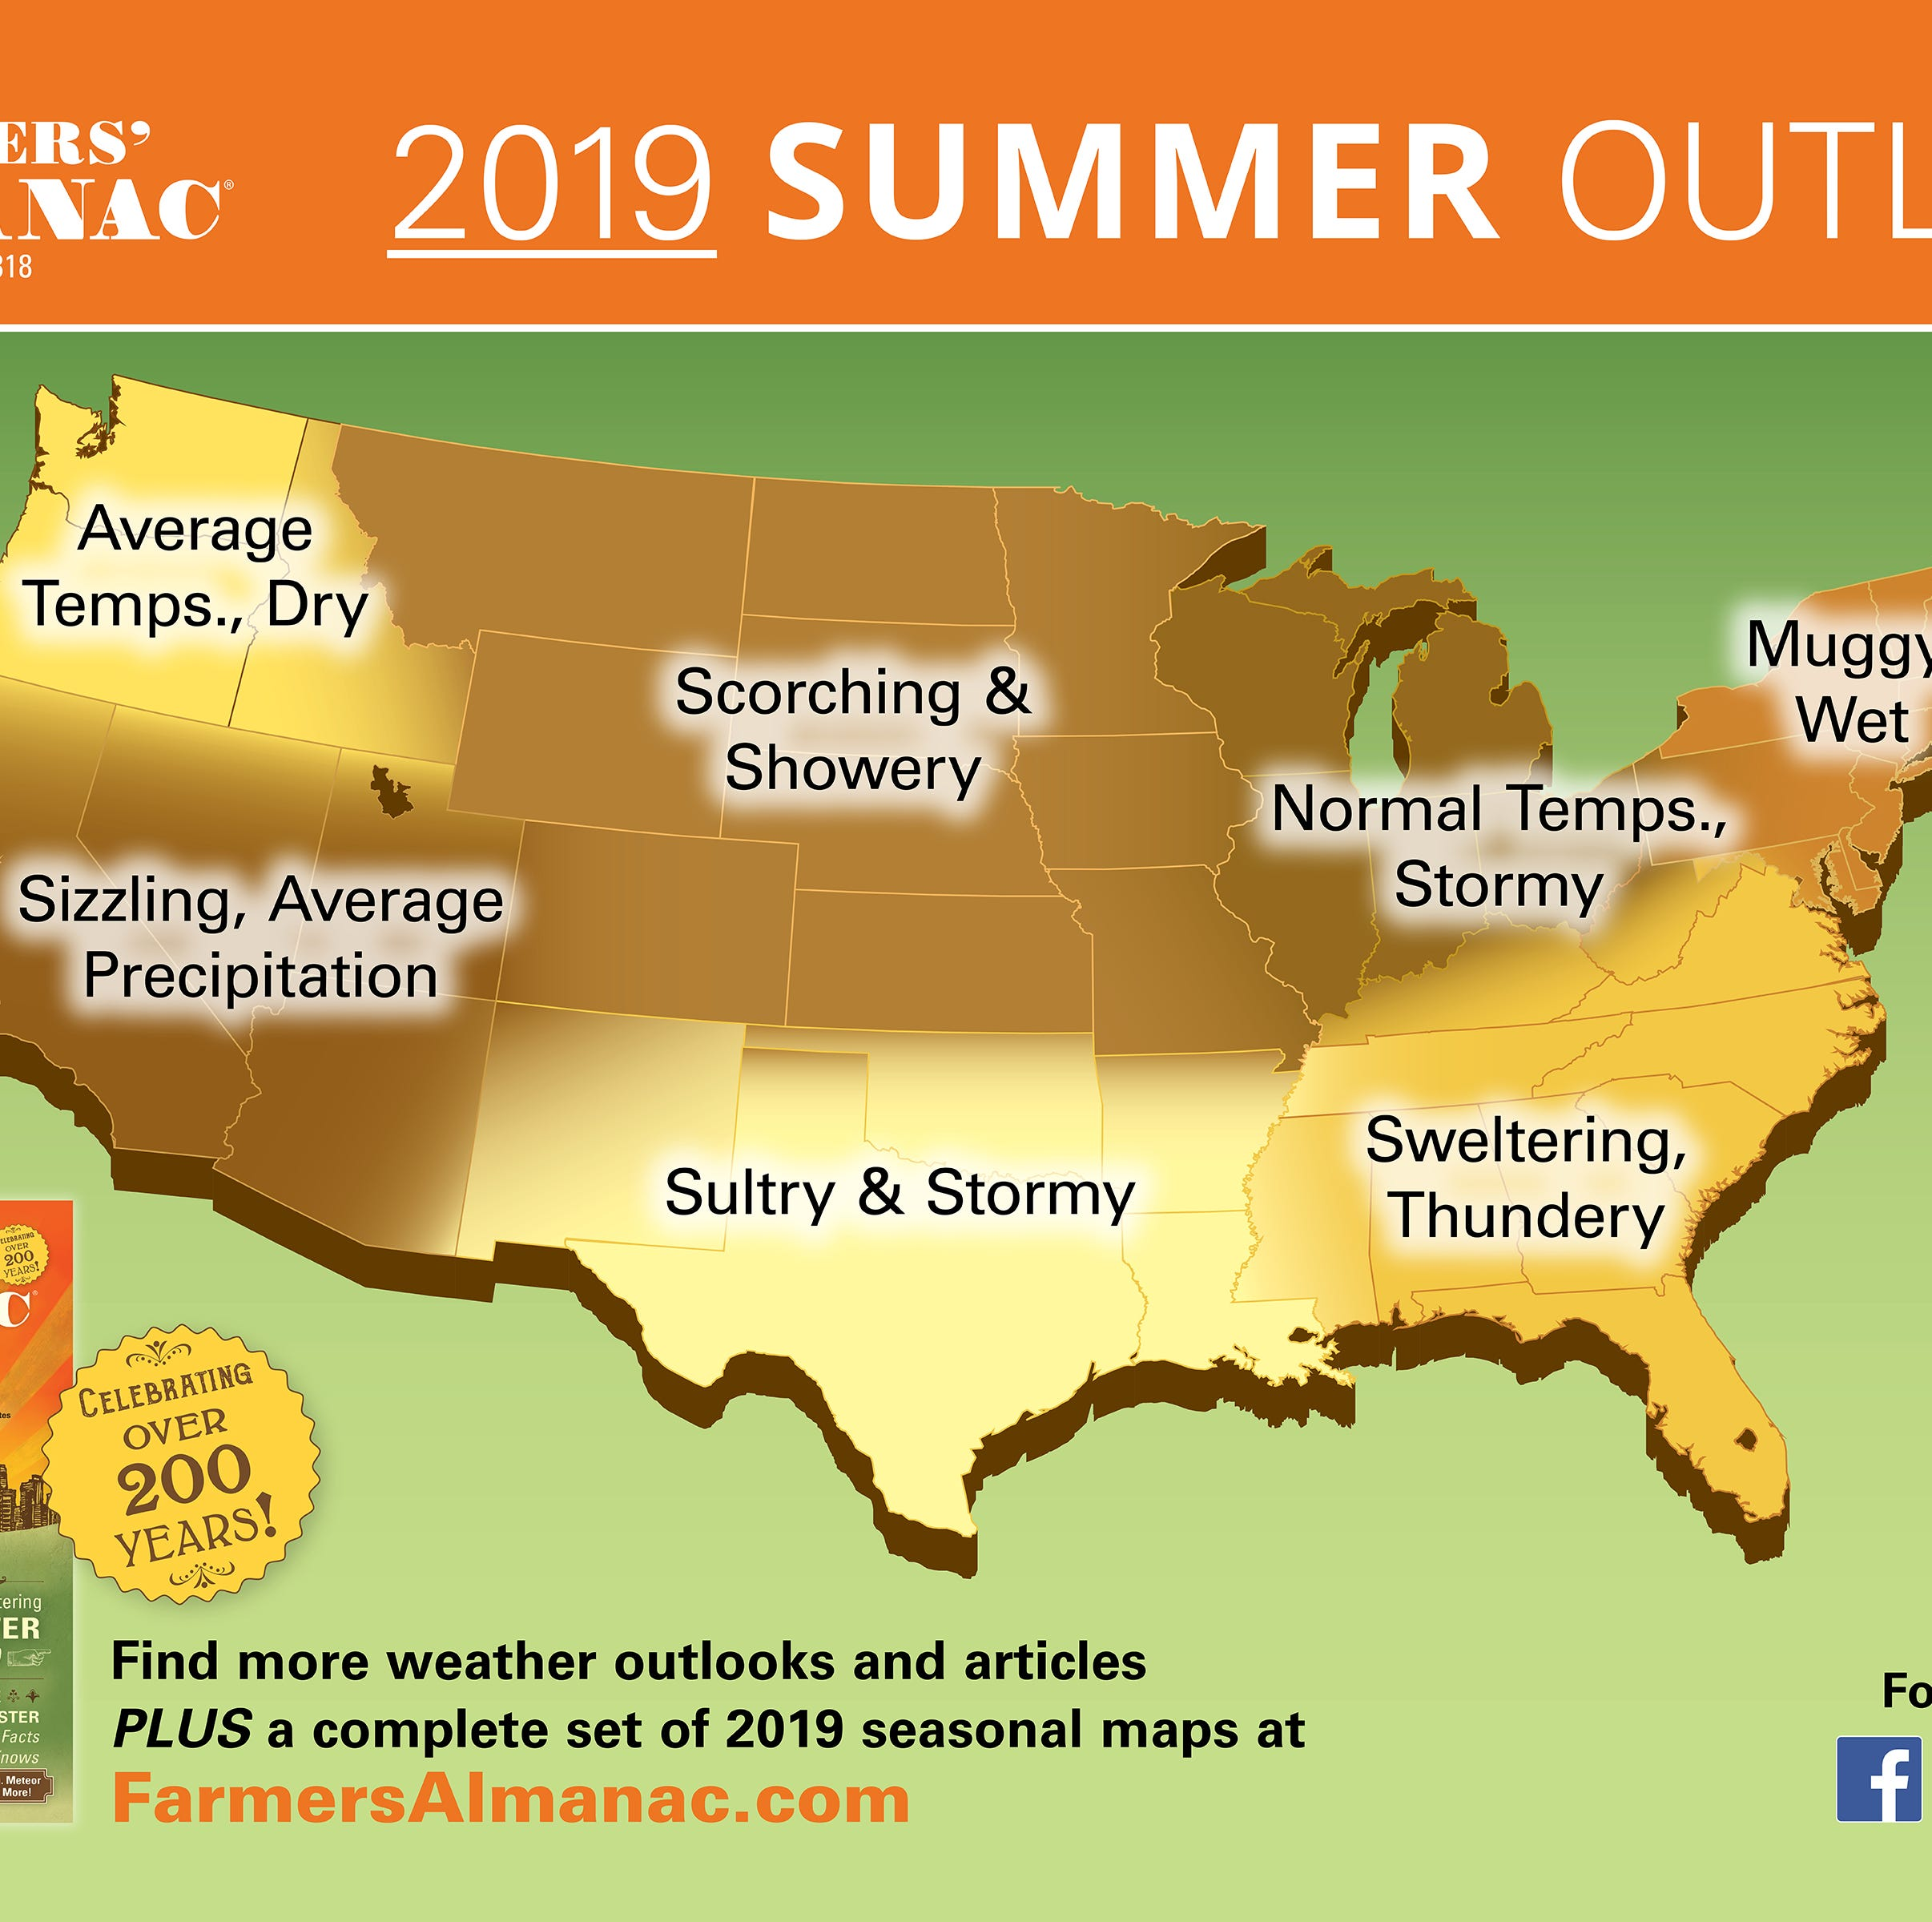 Farmers' Almanac predicts 'muggy and wet' summer